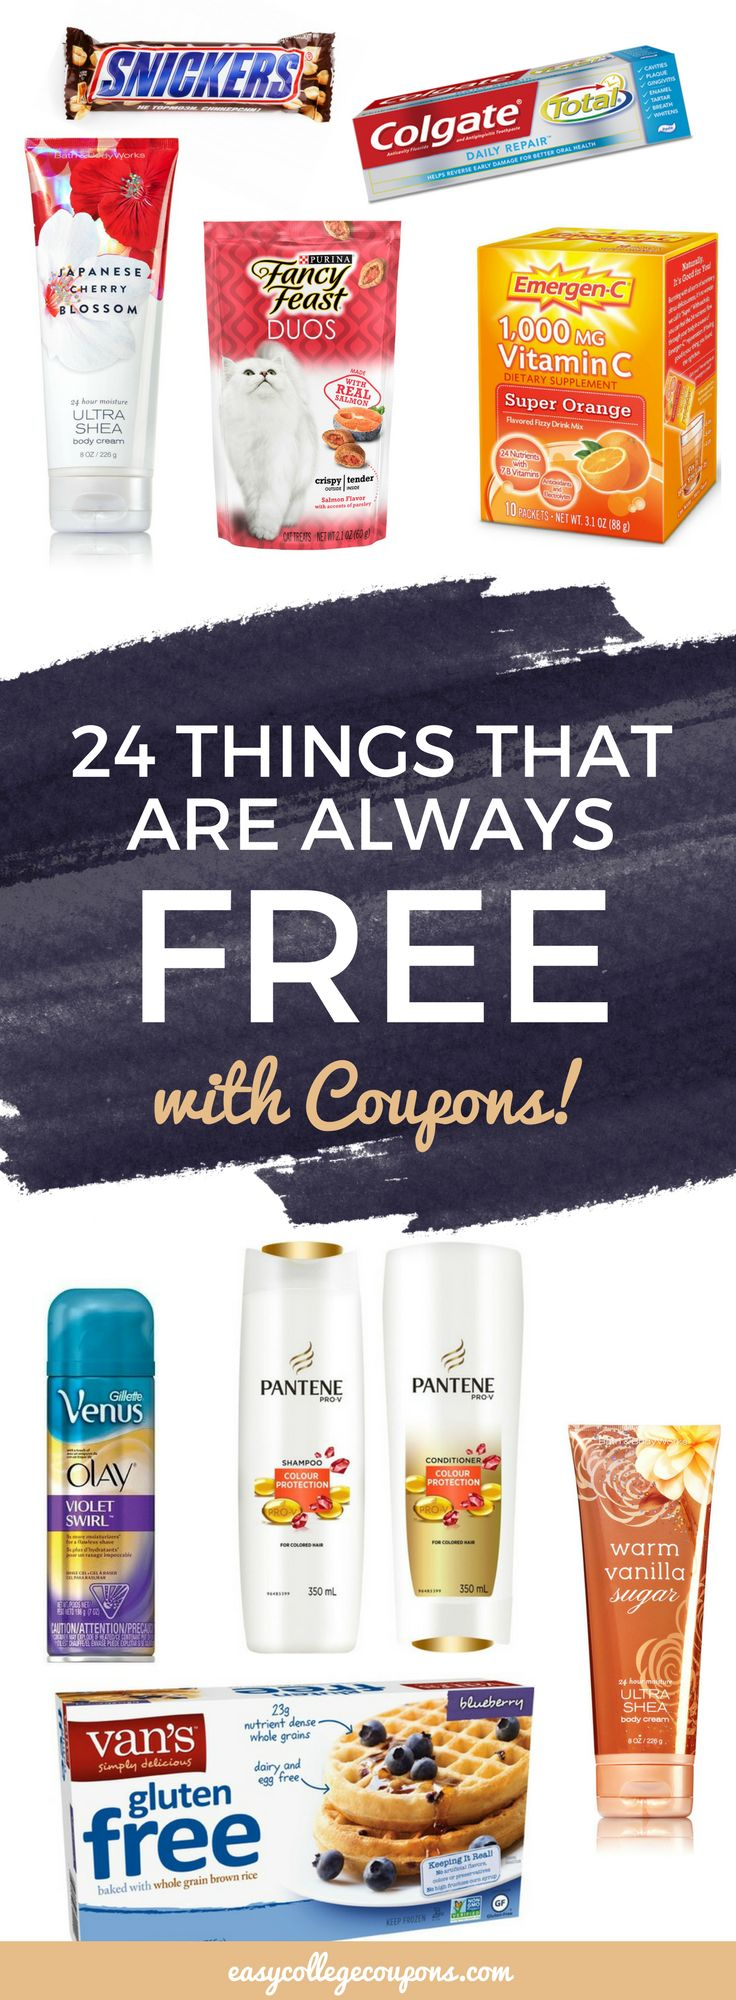 Things that are free with coupons Free Stuff Freebies Couponing for Beginners Save Money on Groceries or Make Up via @esycoupons